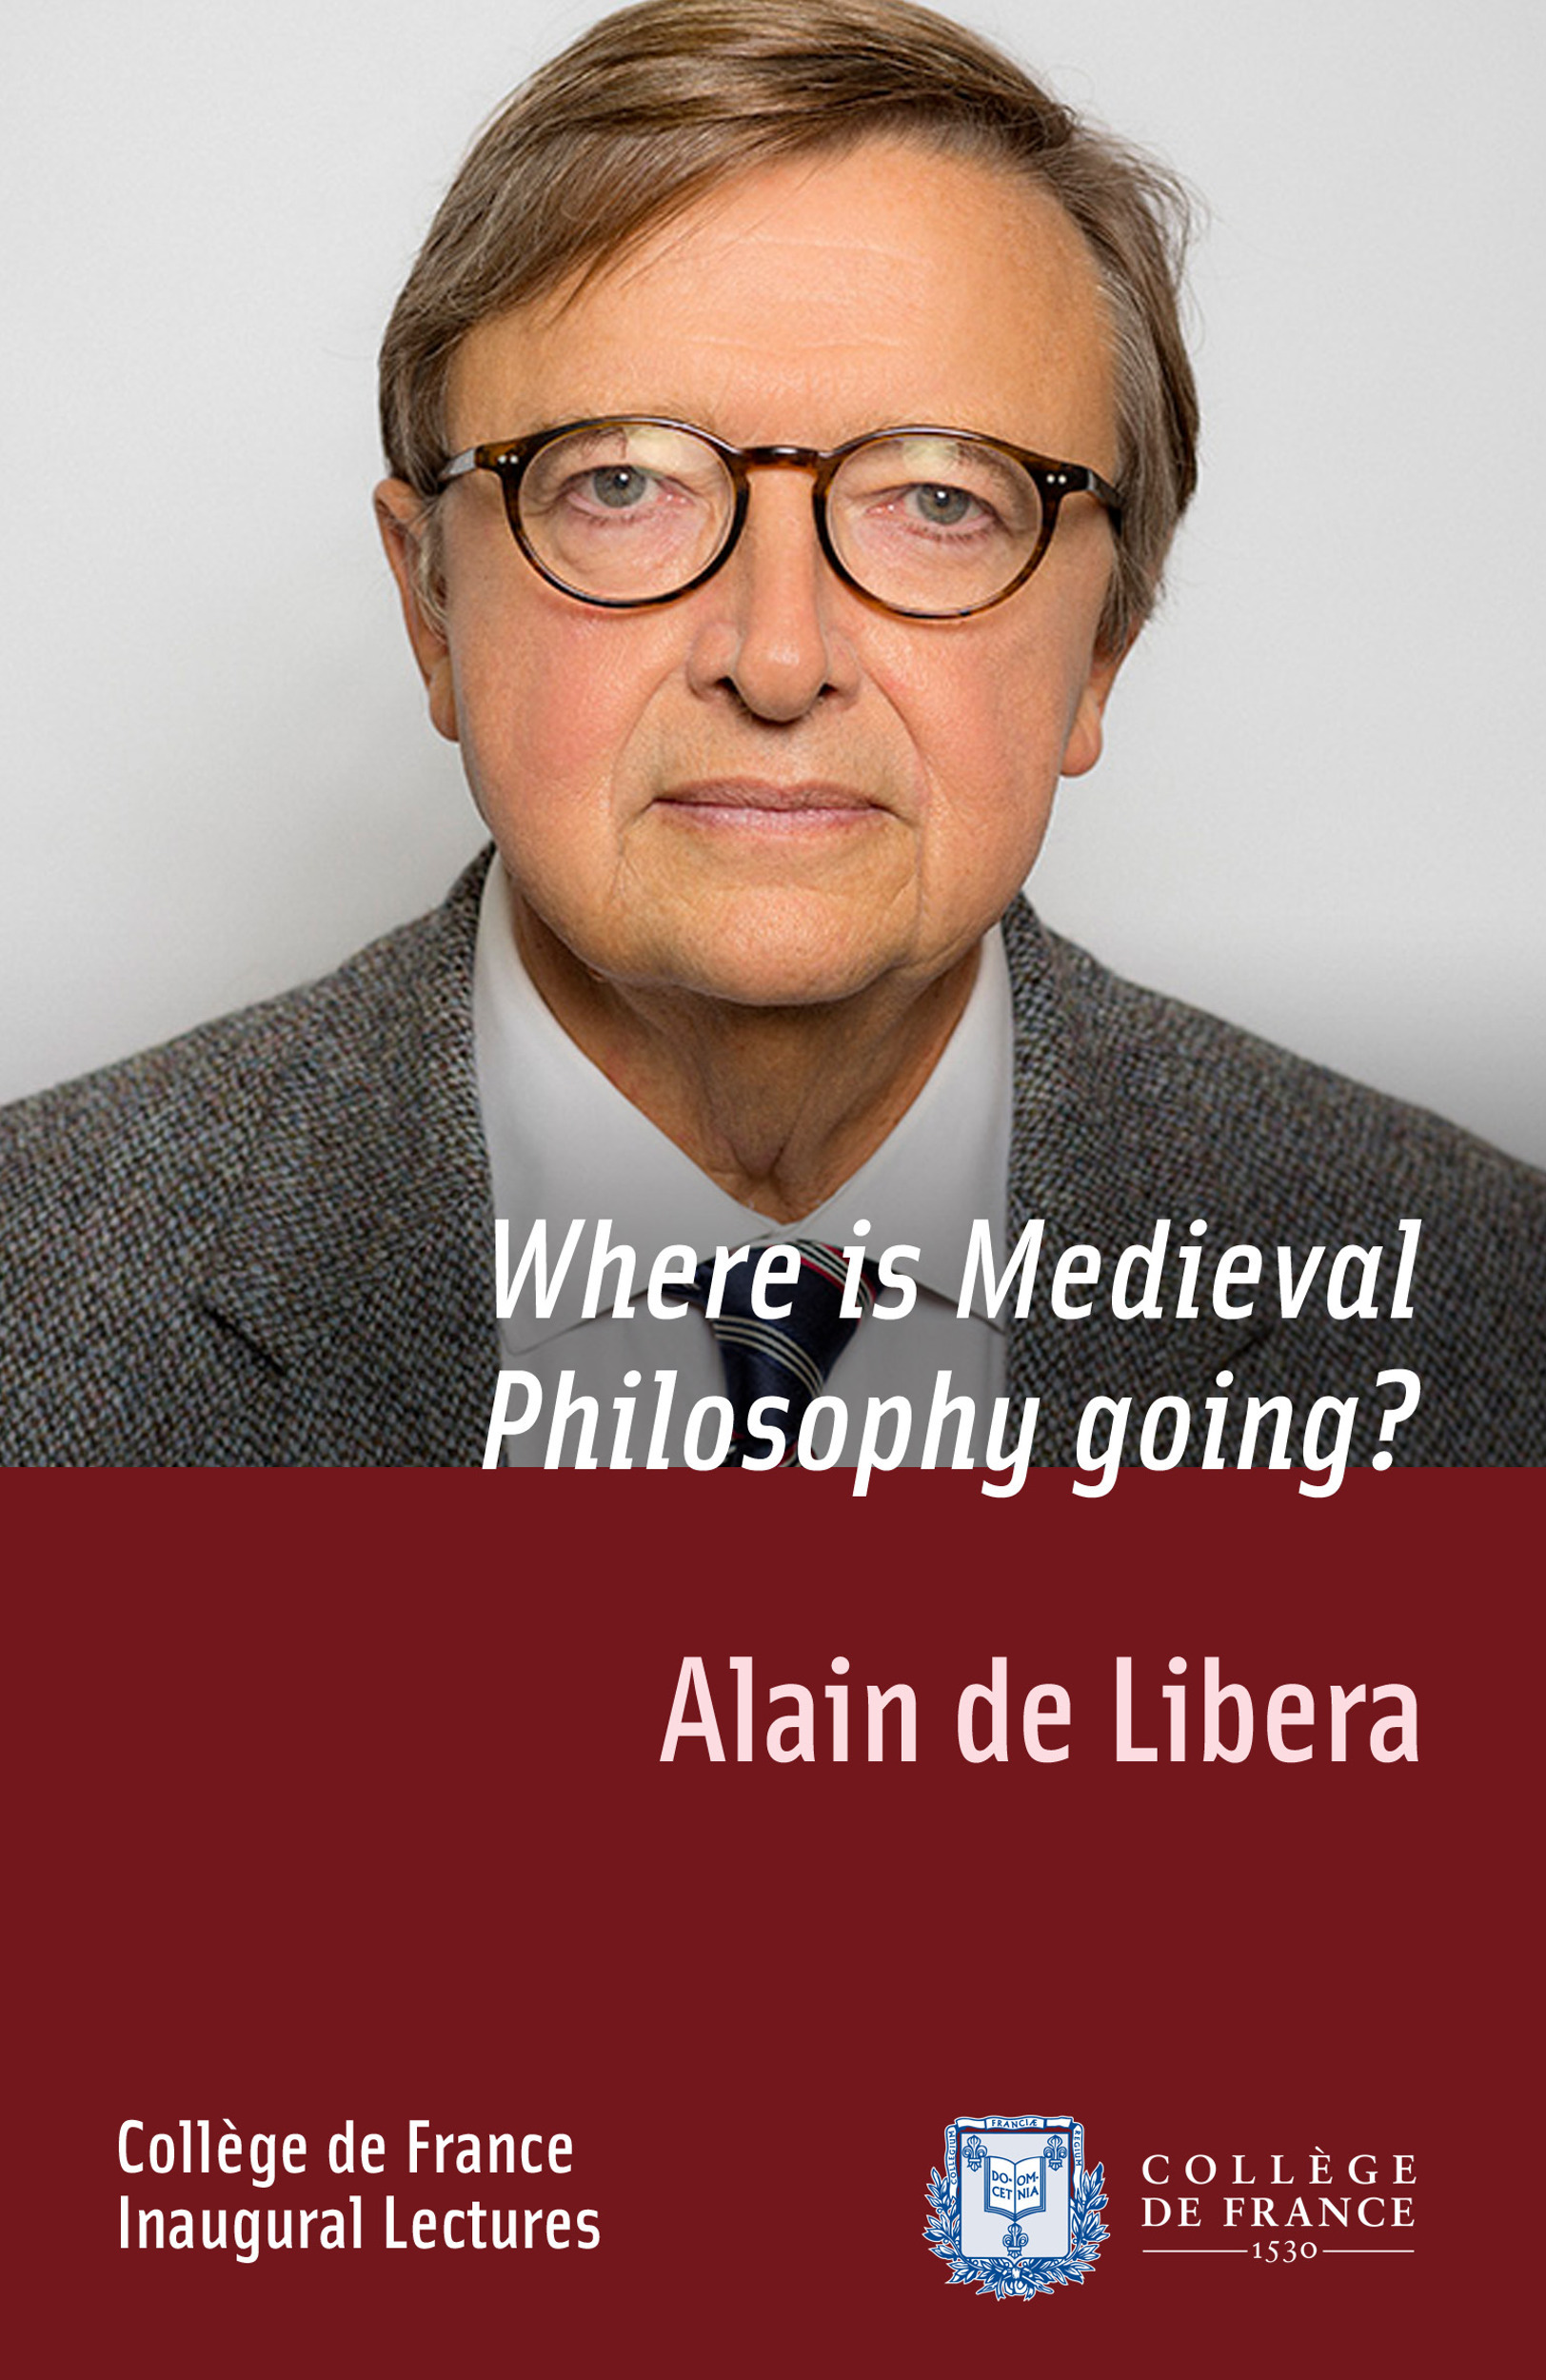 Where is Medieval Philosophy going?